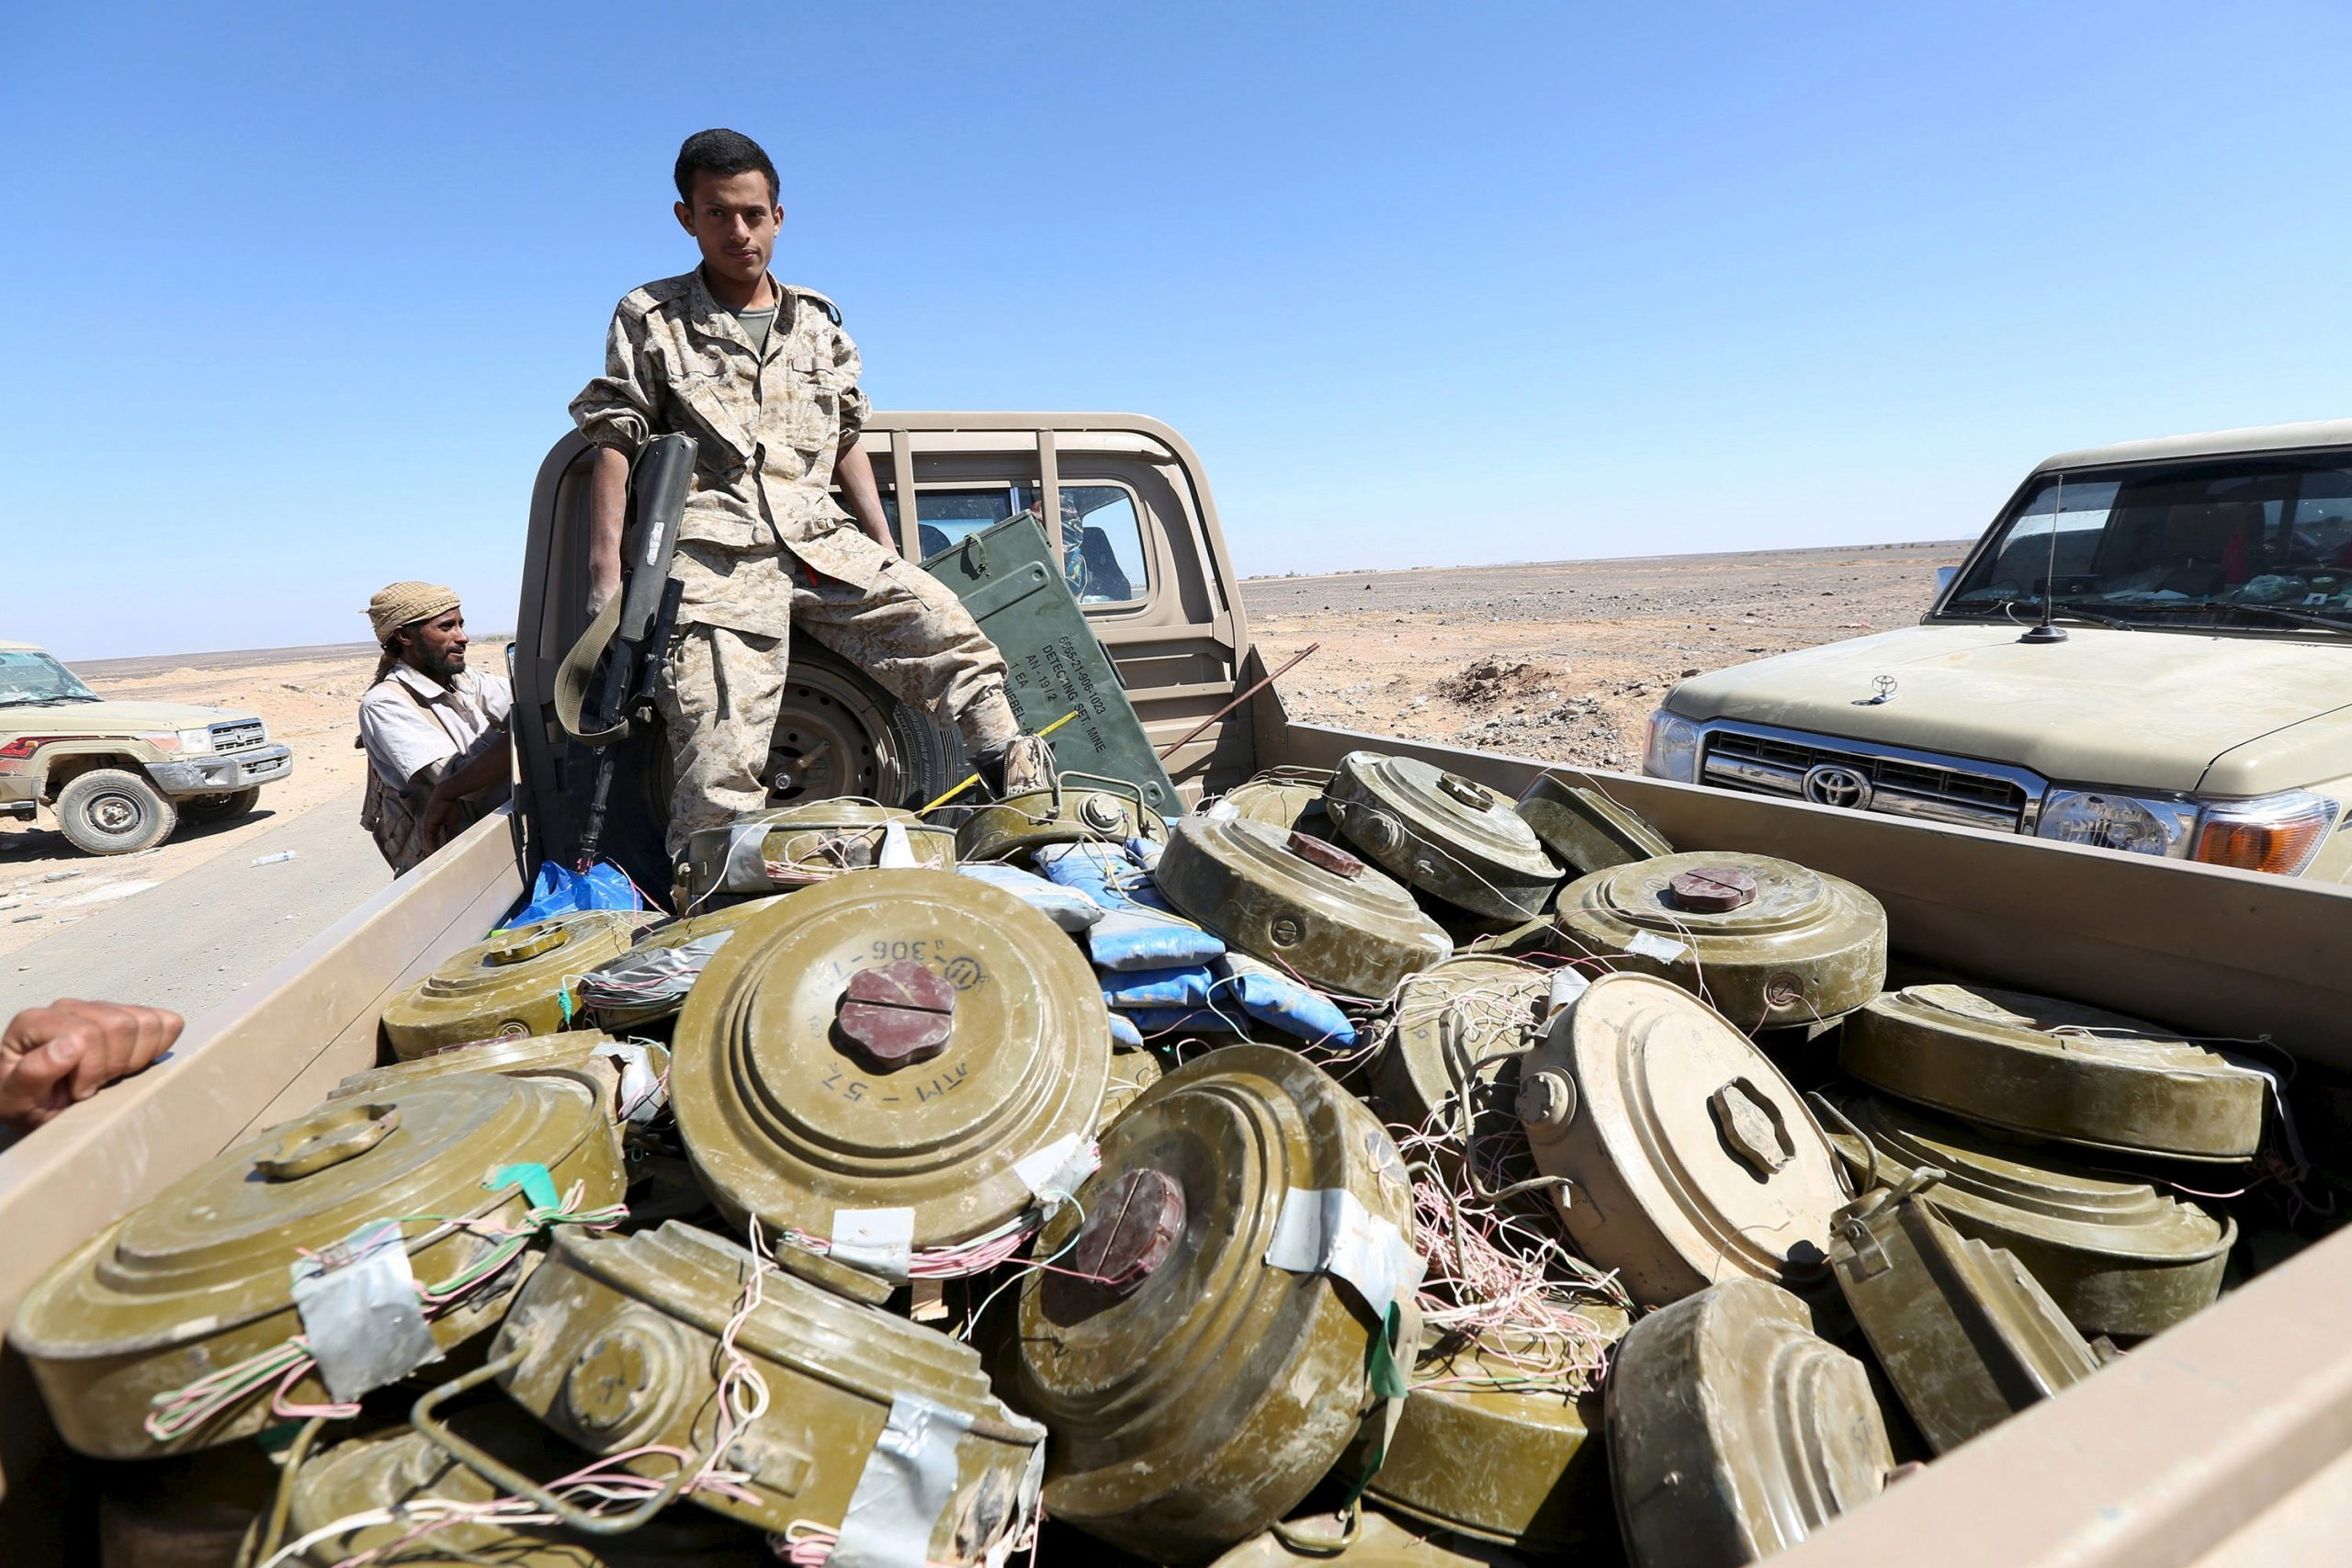 Egypt Is Using Banned U.S.-Made Cluster Munitions in Sinai, Rights Group Says